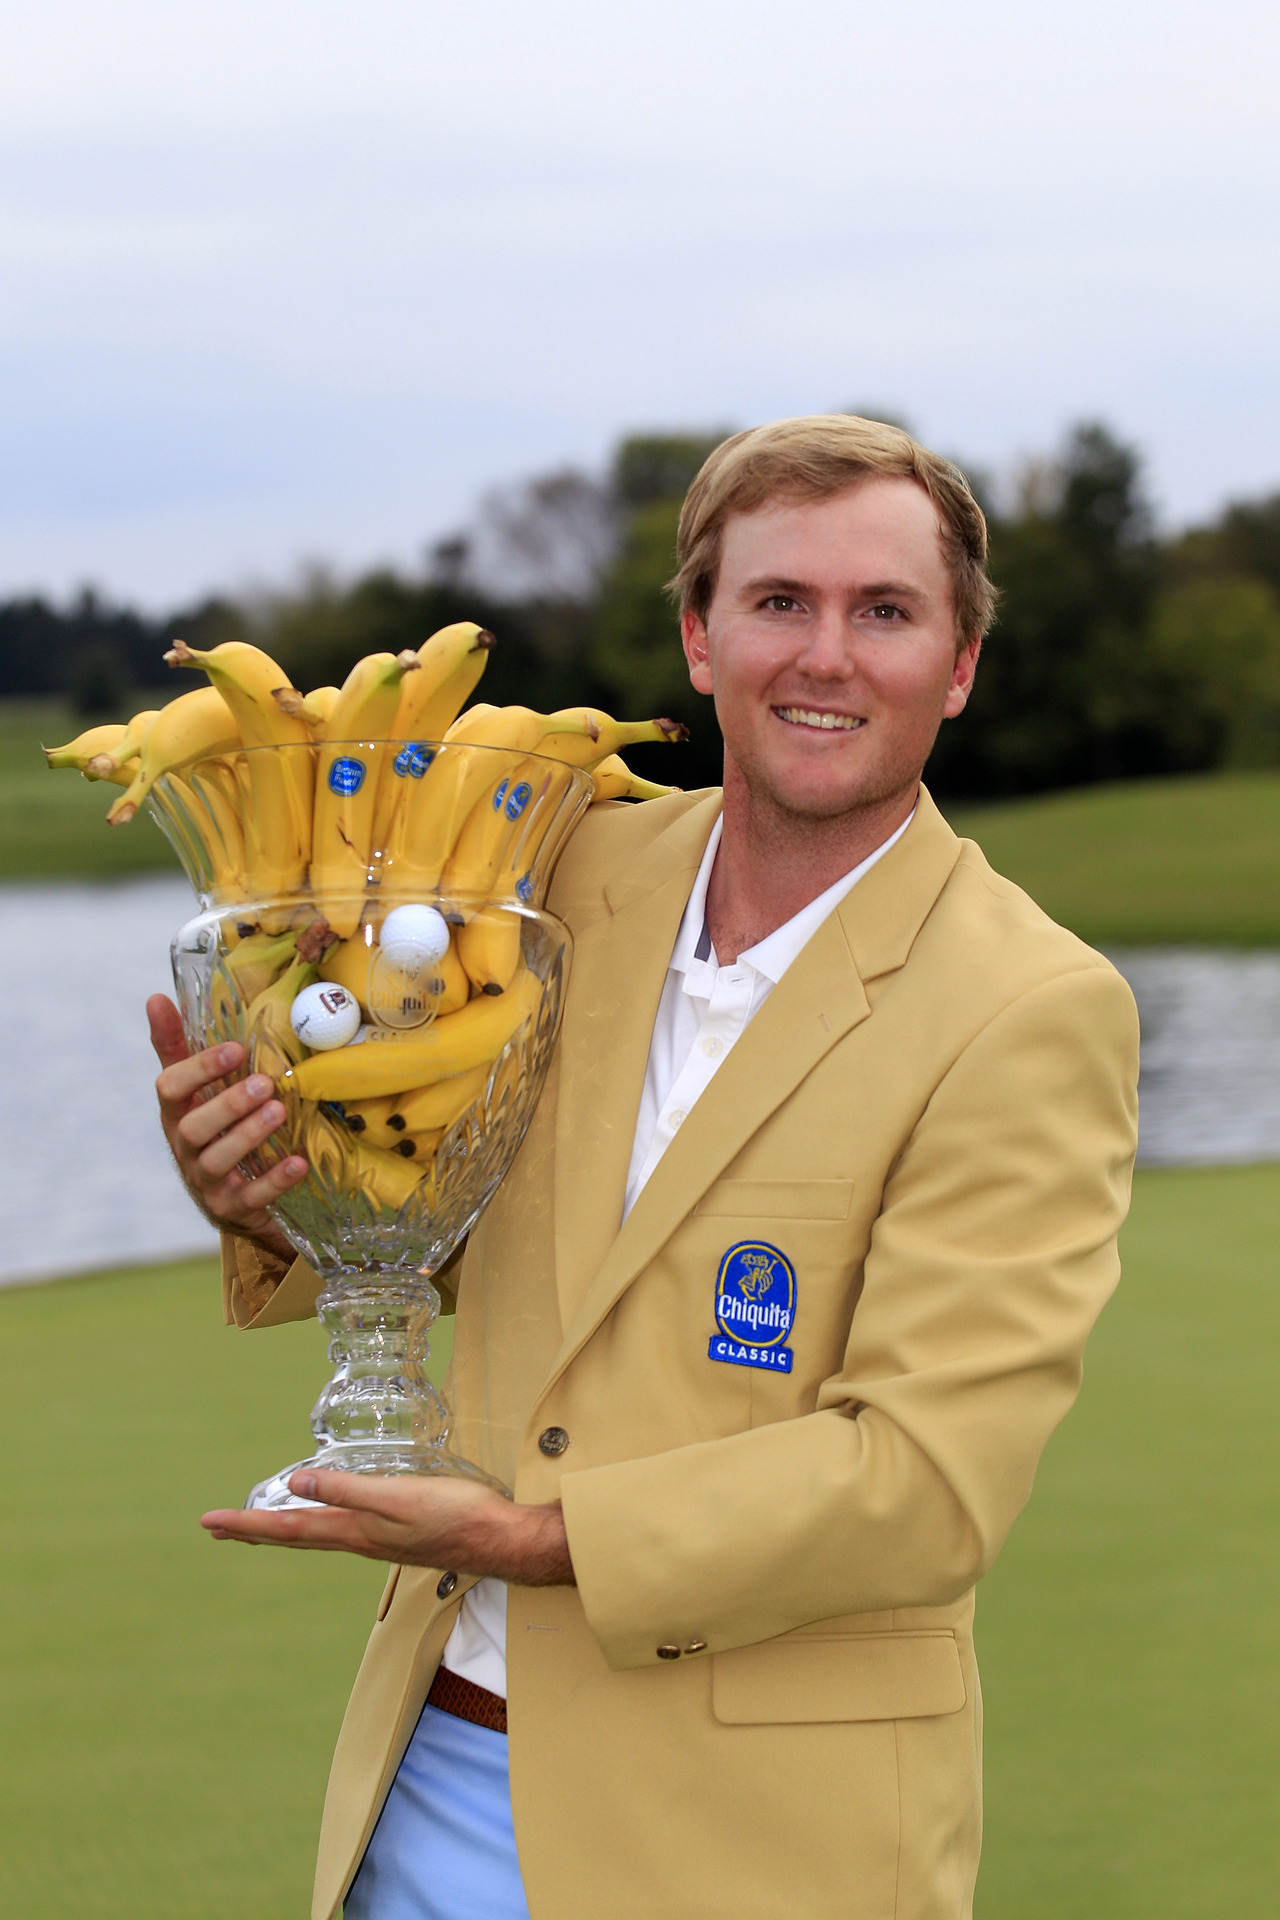 This one's for ALL THE BANANAS: Russell Henley holds the trophy after winning a one-hole playoff at the Chiquita Classic held at The Club at Longview on September 30, 2012 in Weddington, North Carolina.Photo: Michael Cohen/Getty Images